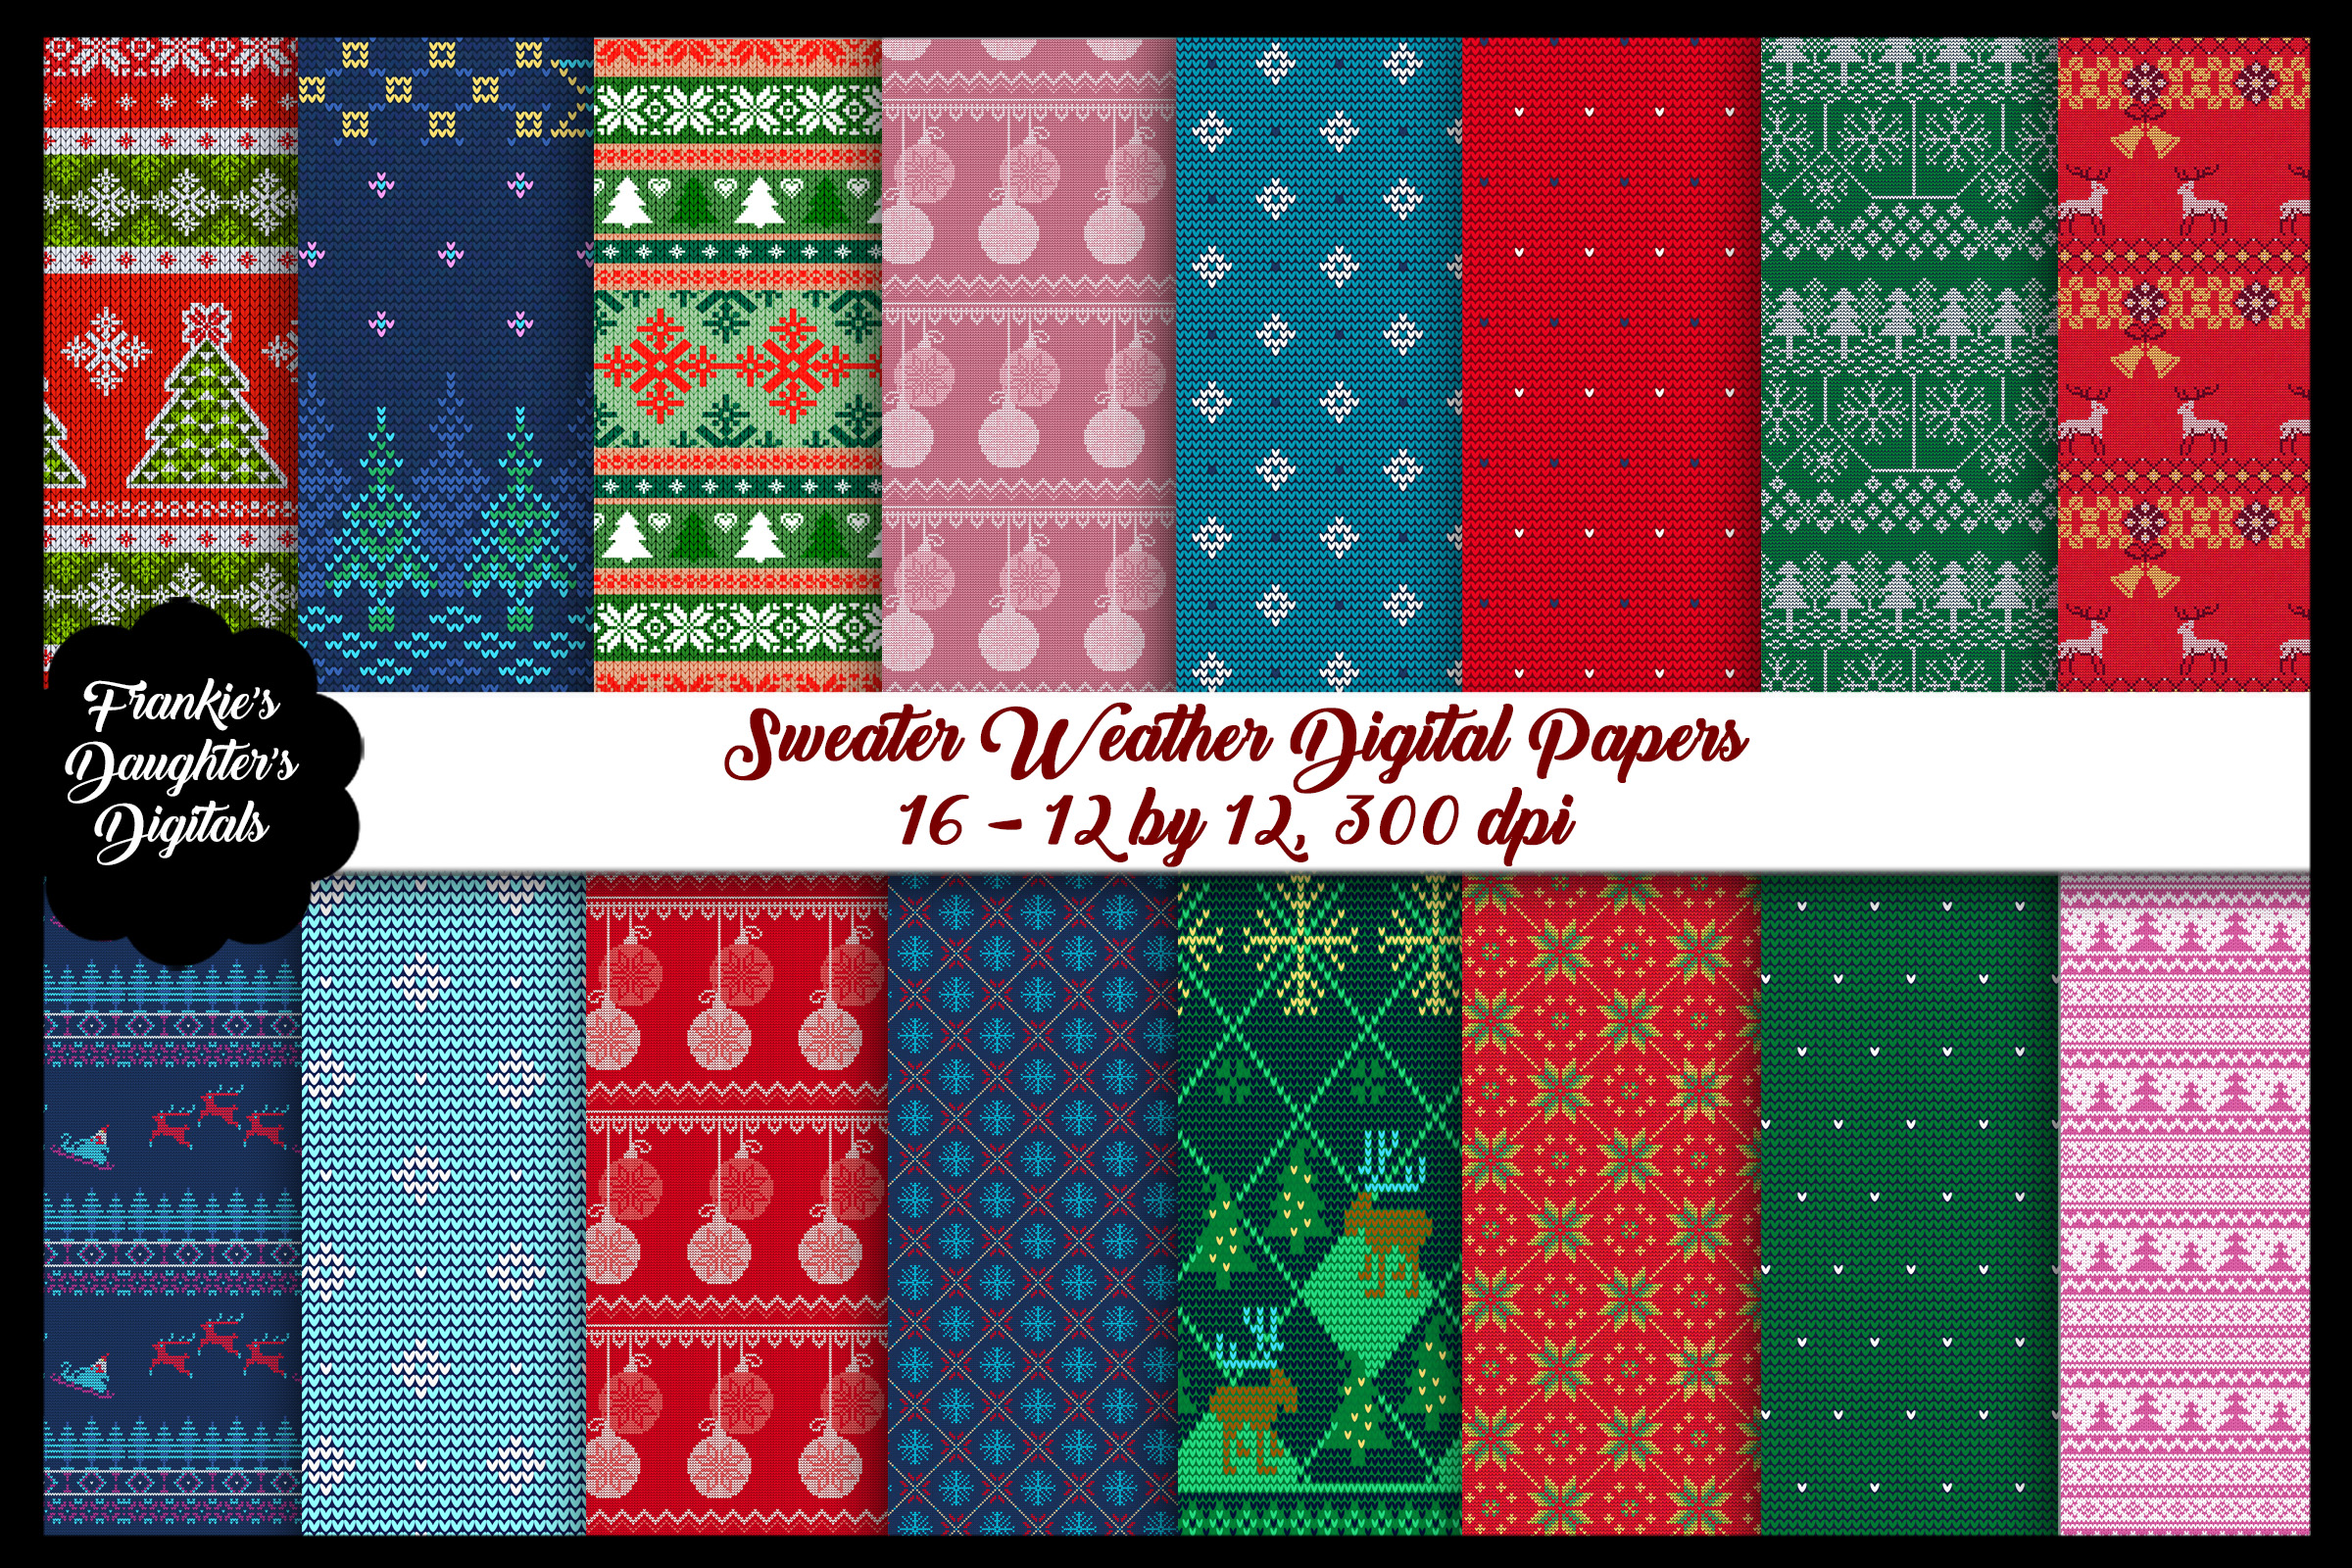 Christmas Sweater Weather Digital Paper Pack example image 1